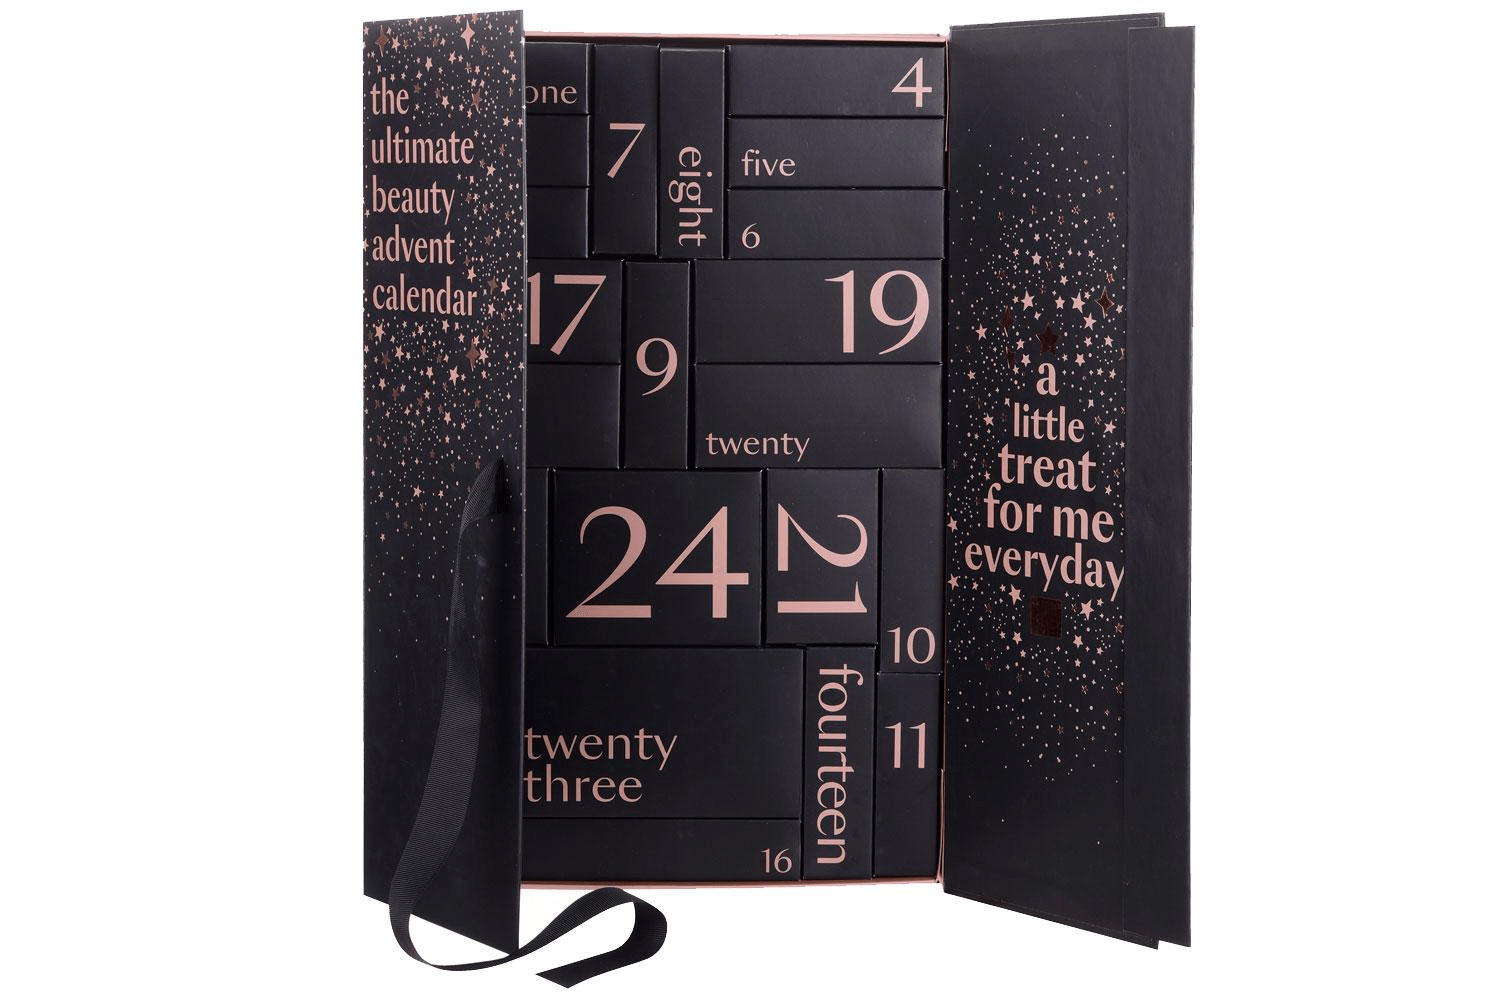 2018 Debenhams Beauty Advent Calendar Coming Soon + Full Spoilers!